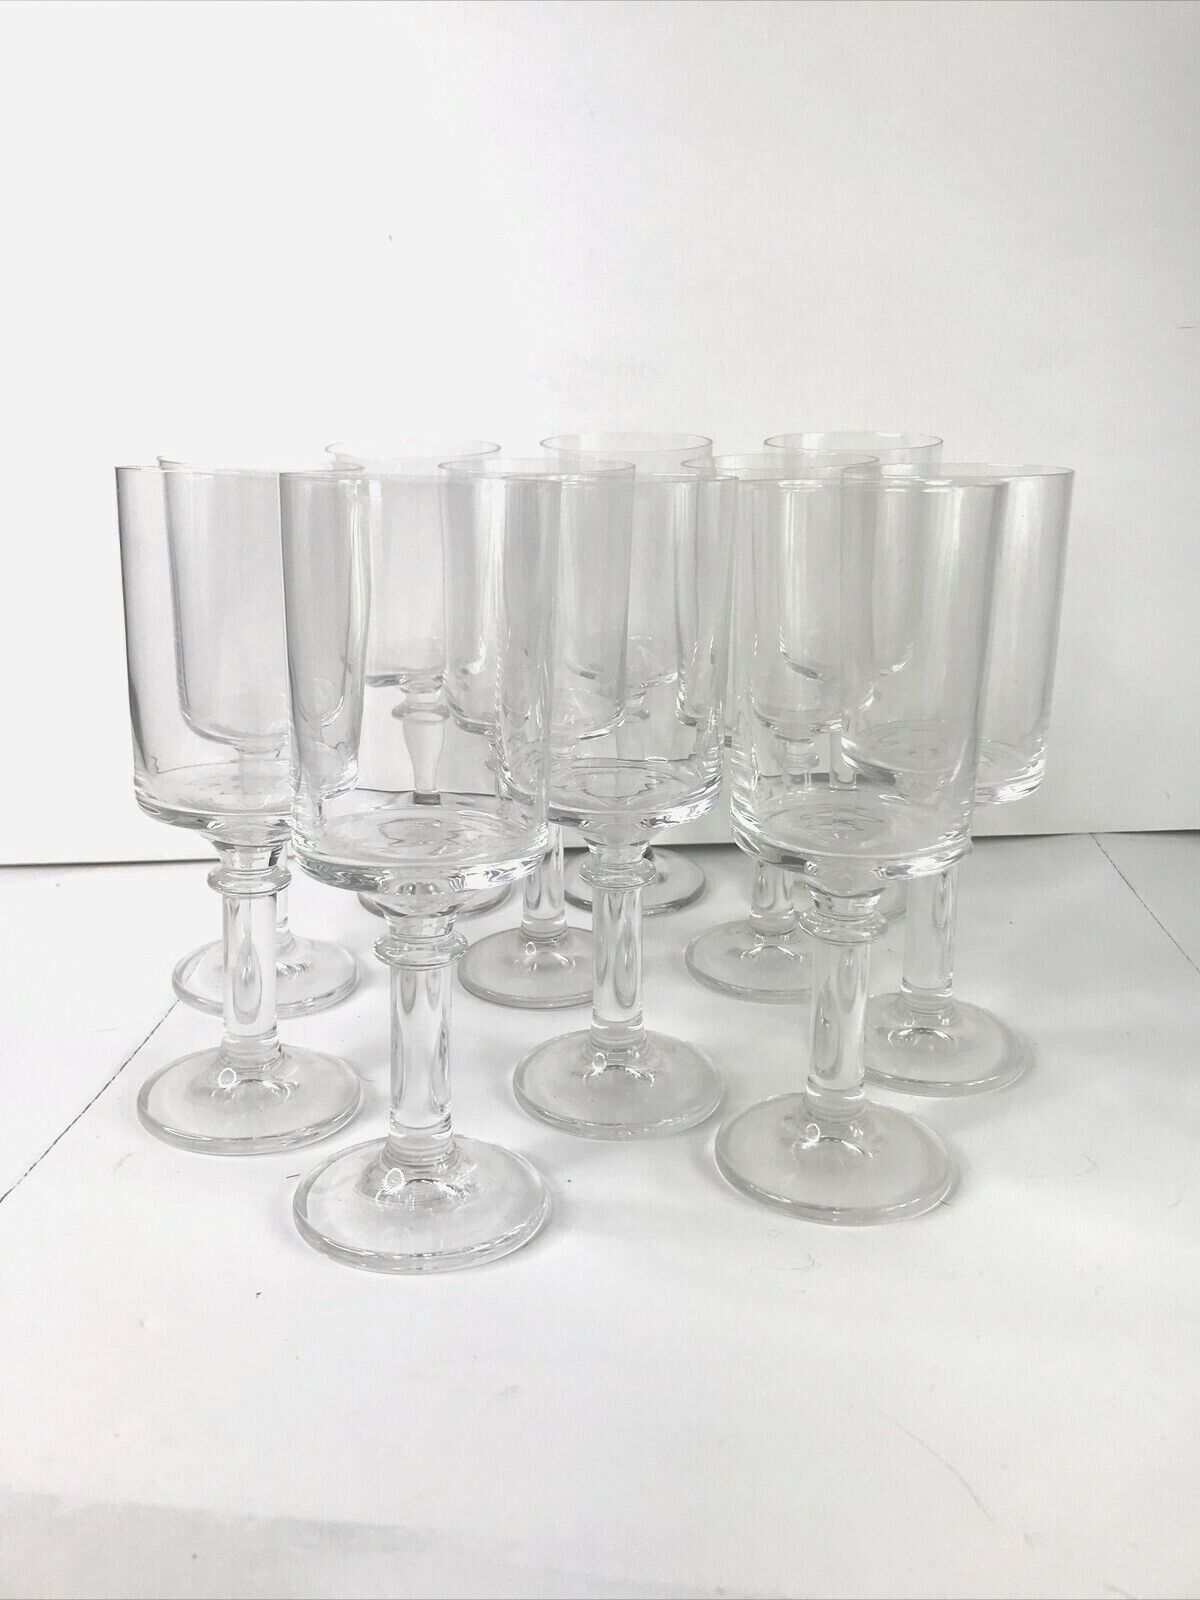 Champagne Flute Faceted Glasses Modern Tall Clear Wine Glasses QTY 11 - $131.99